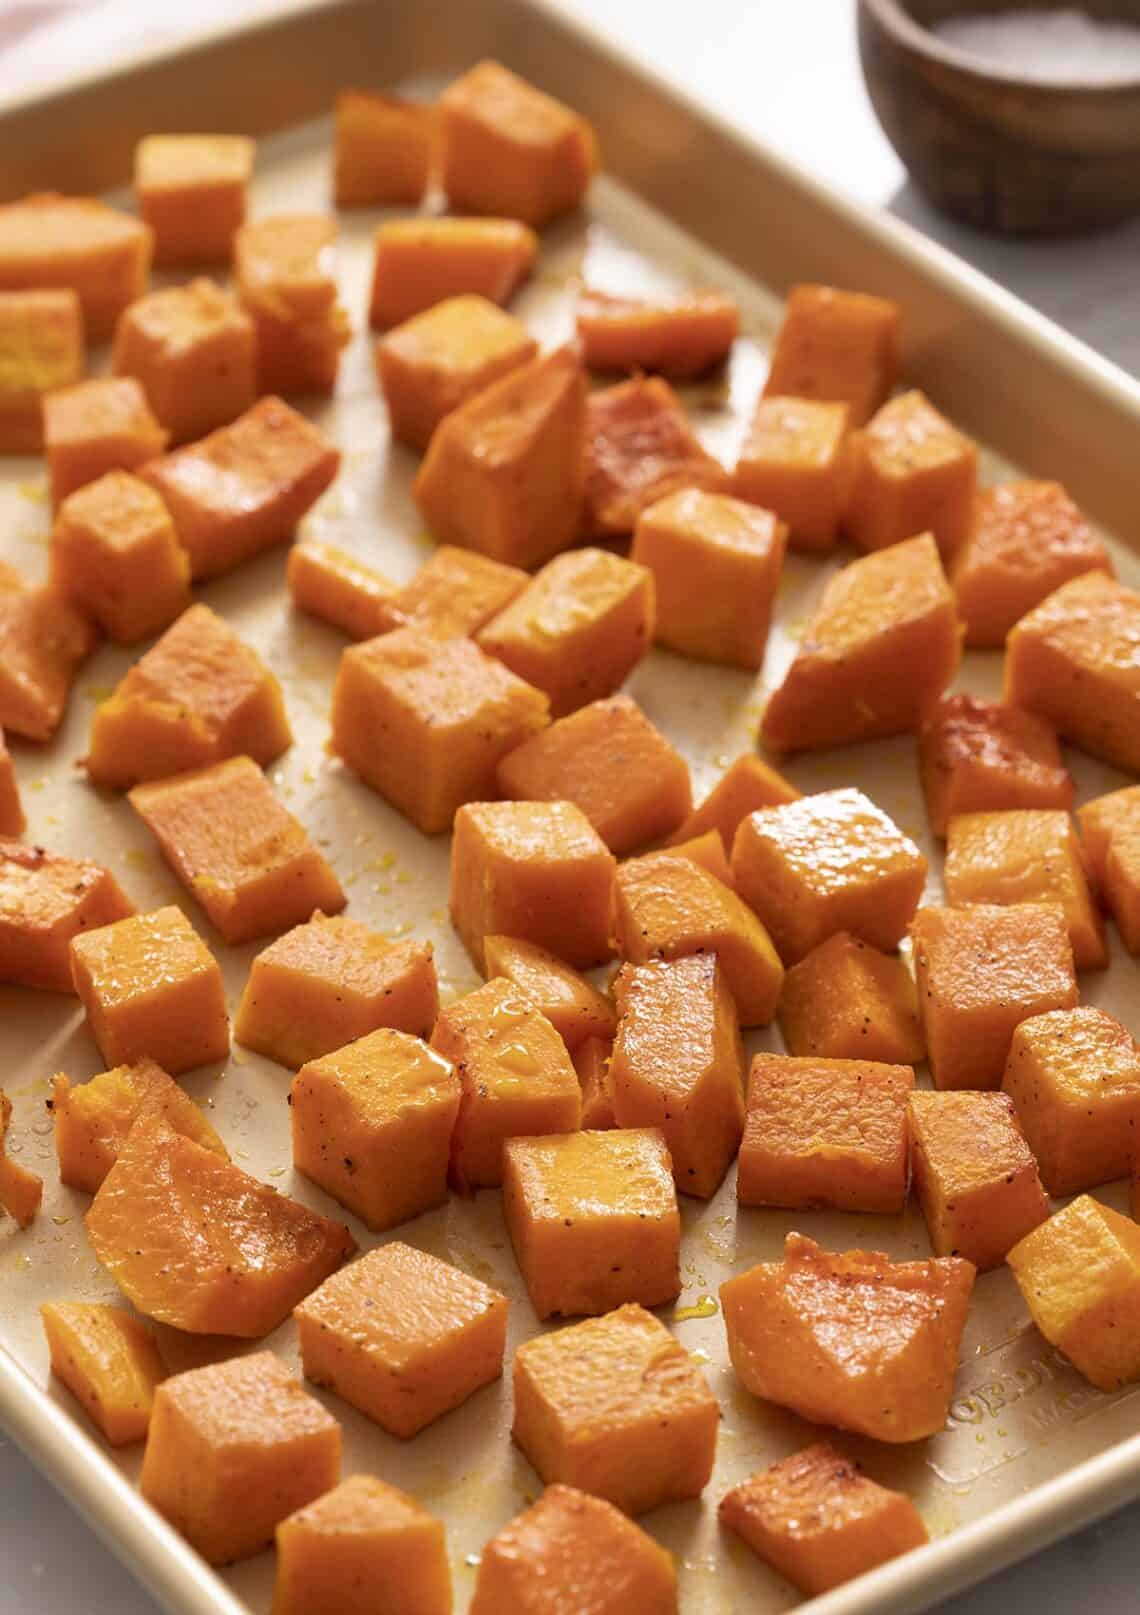 Roasted butternut squash pieces on a golden baking sheet.